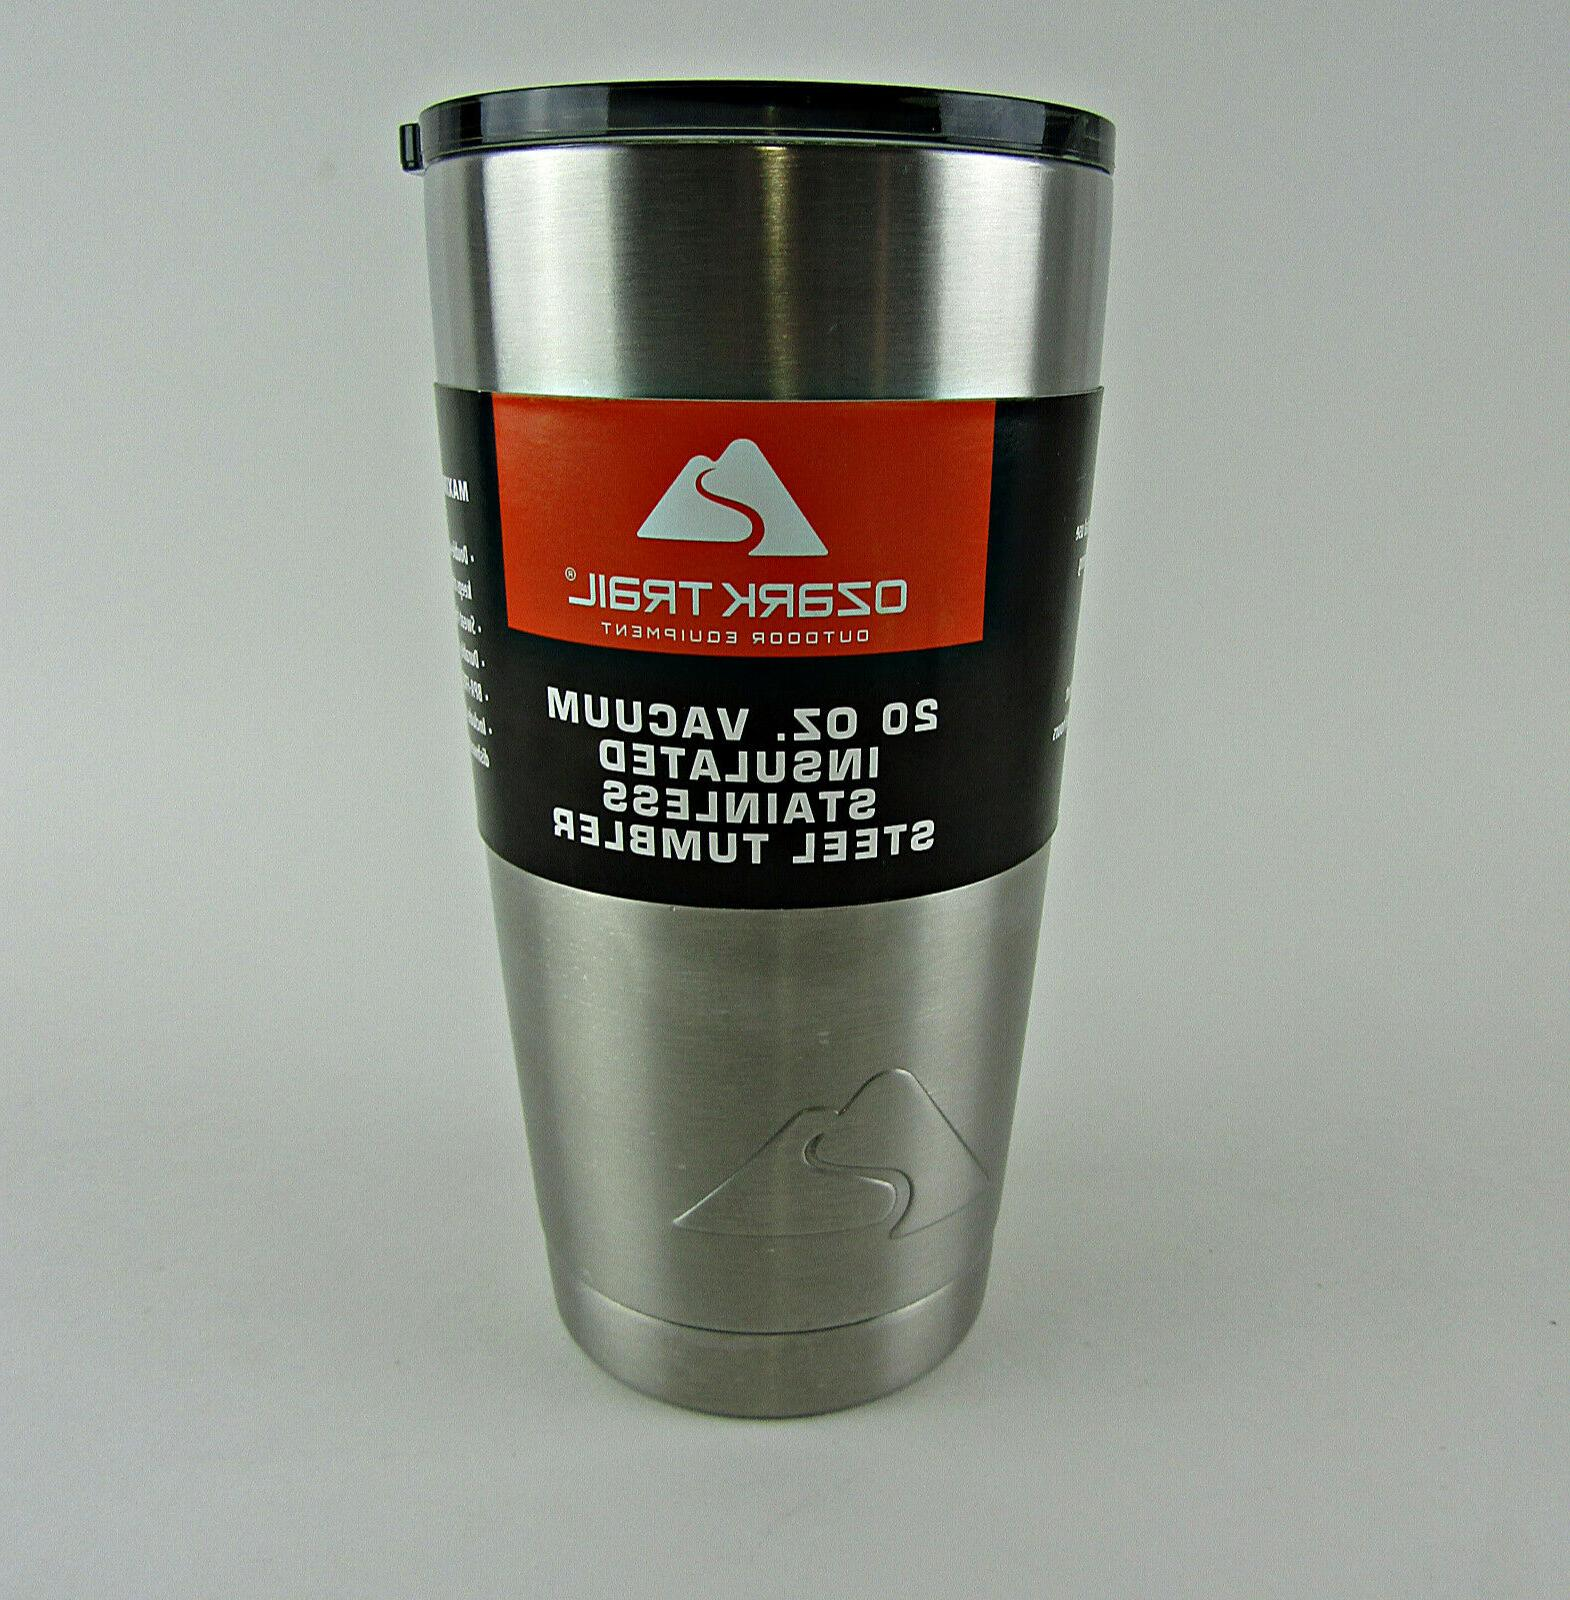 20 oz tumbler insulated stainless steel new